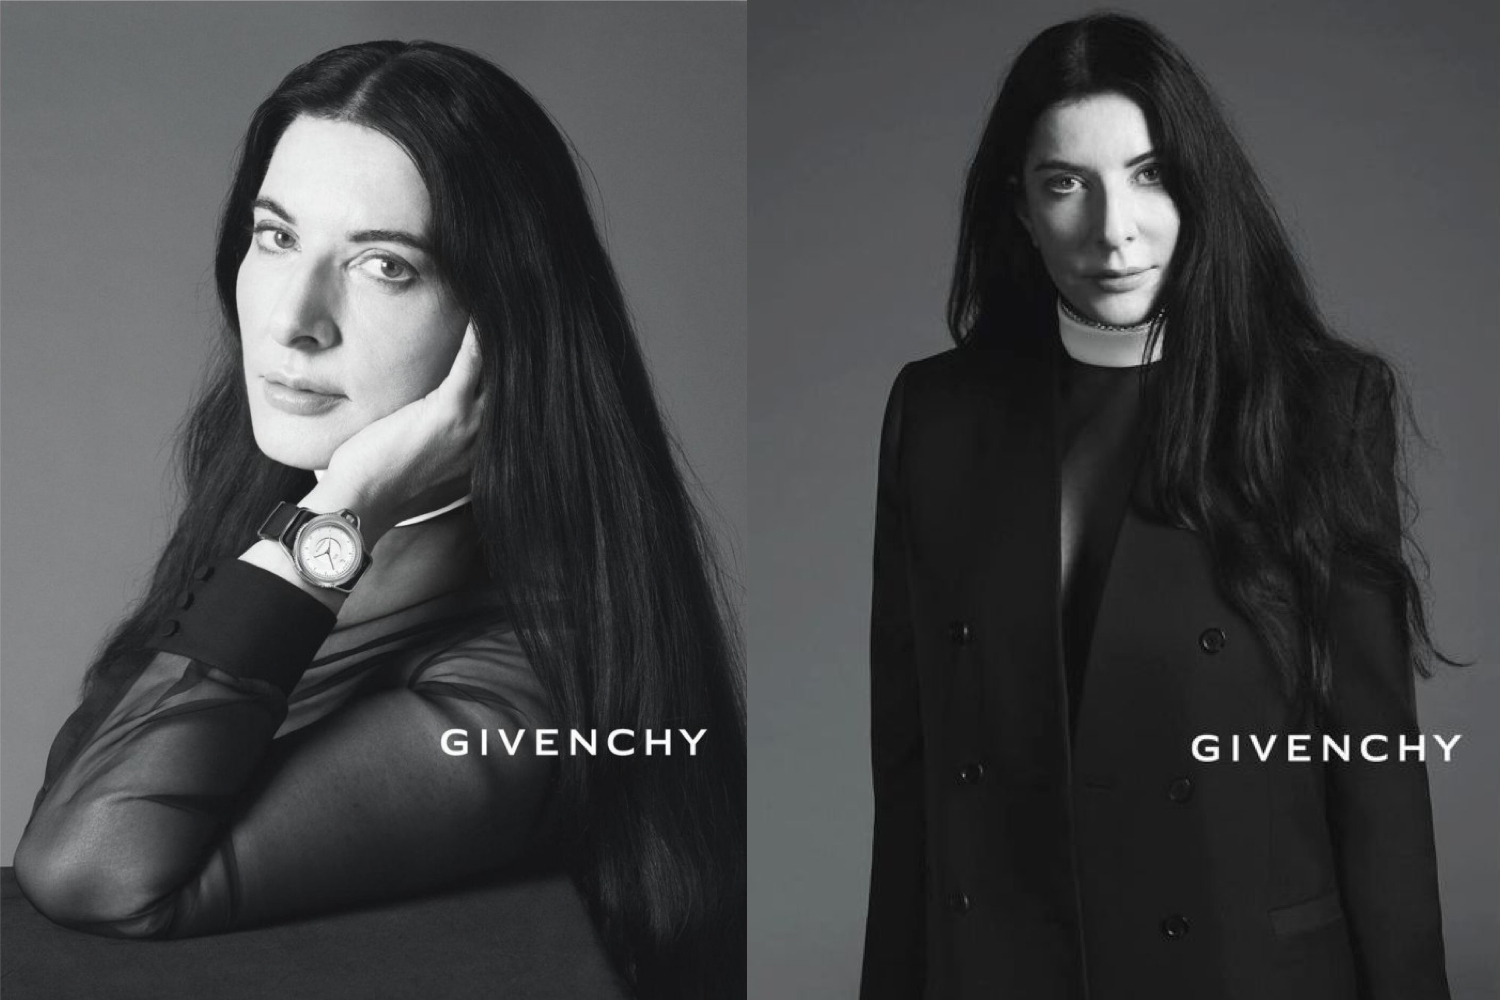 Givenchy SS13. Photography by Mert & Marcus and styling by Carine Roitfeld